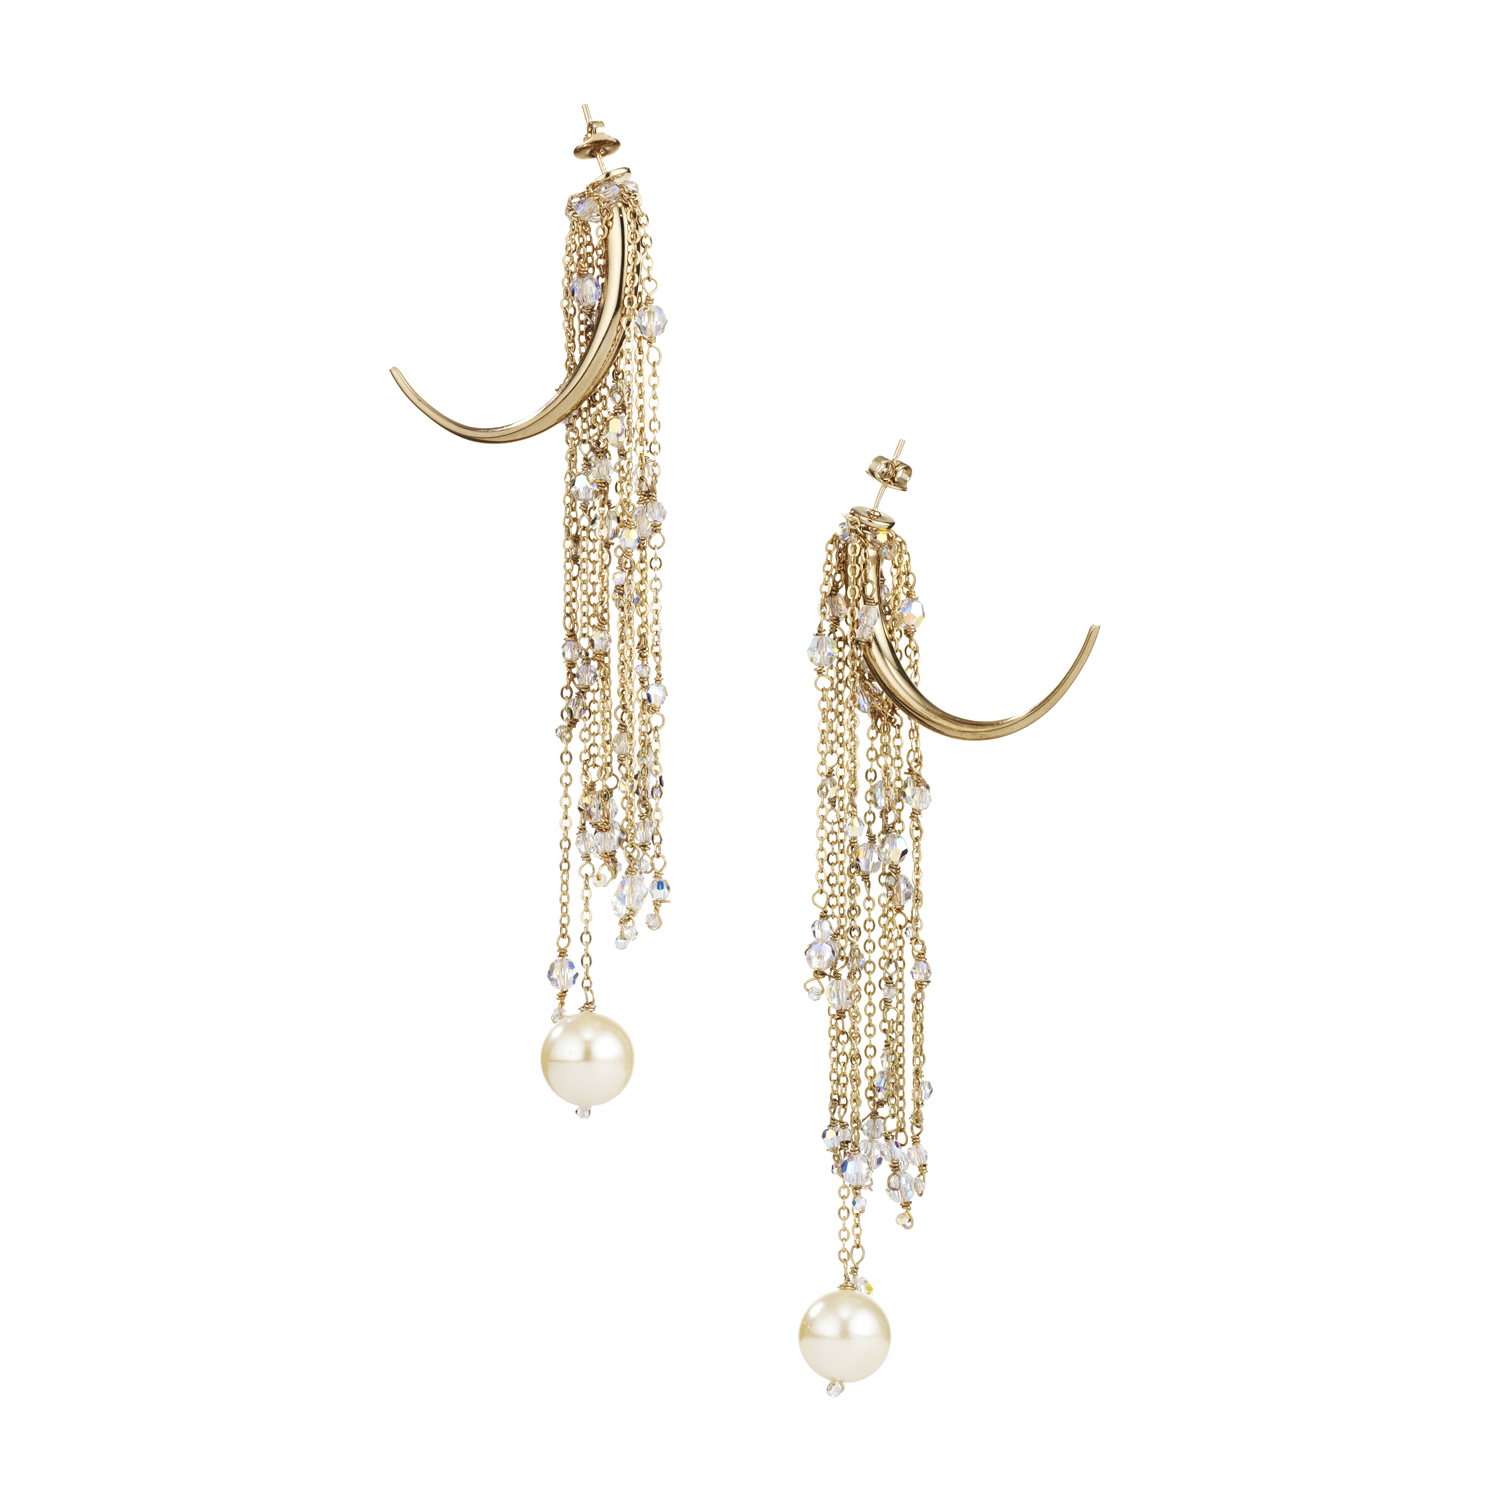 edo-pendulum-earrings-cut-out